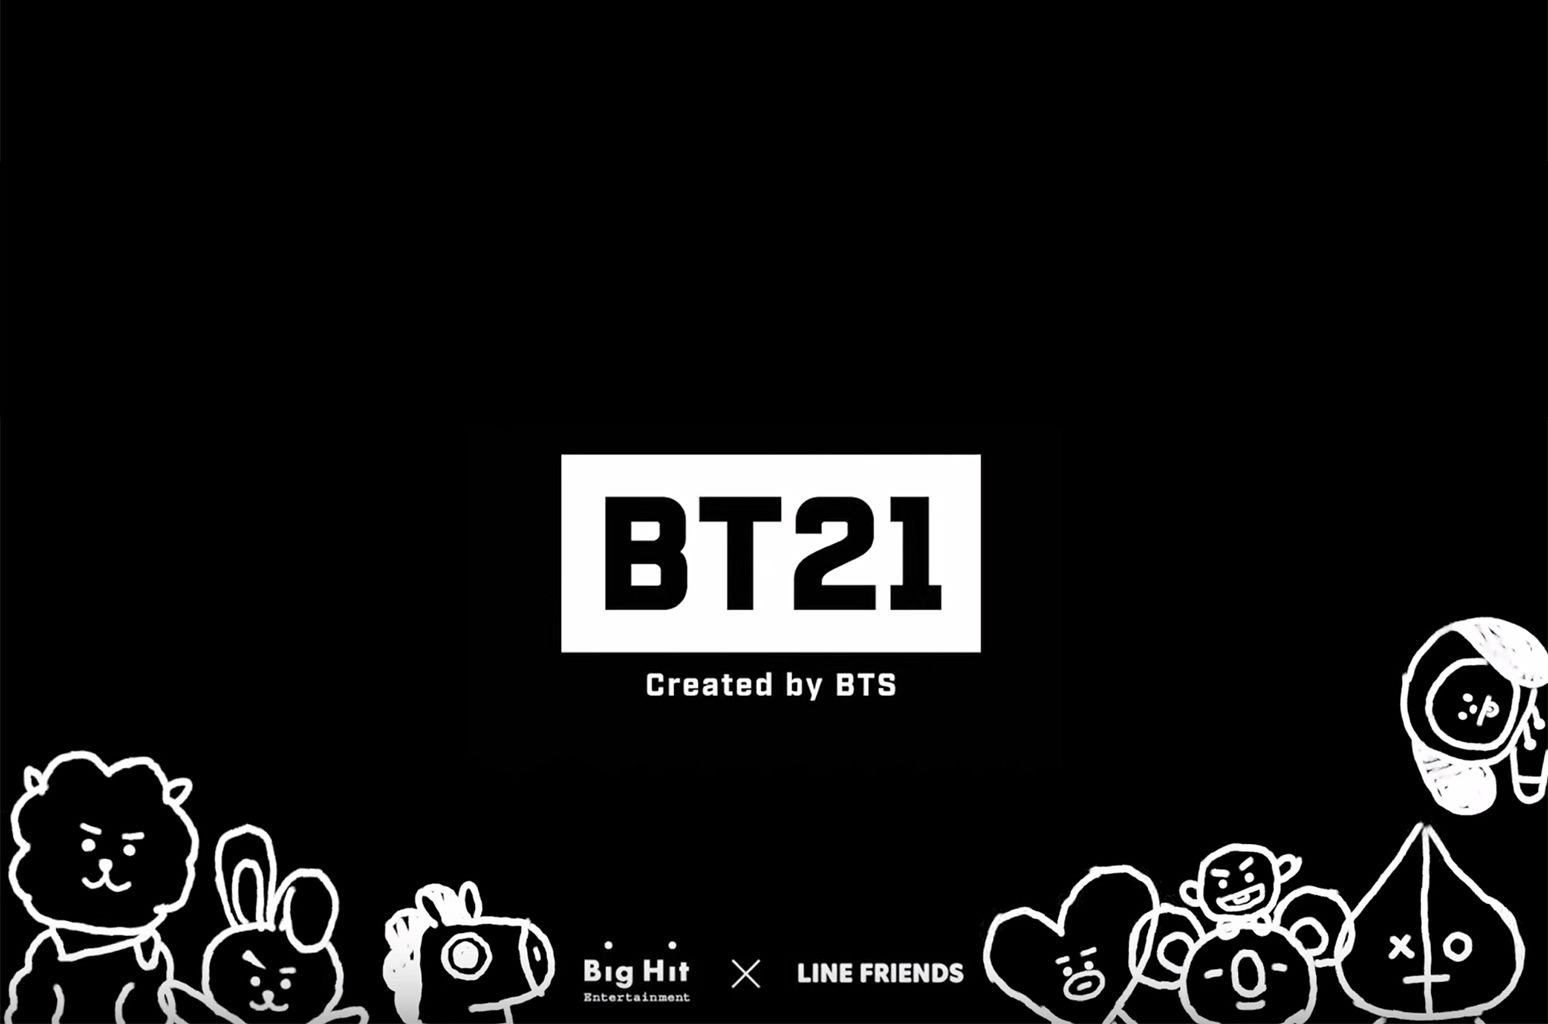 BTS Emoji Collection: Preview Their BT21 Animated Character Designs